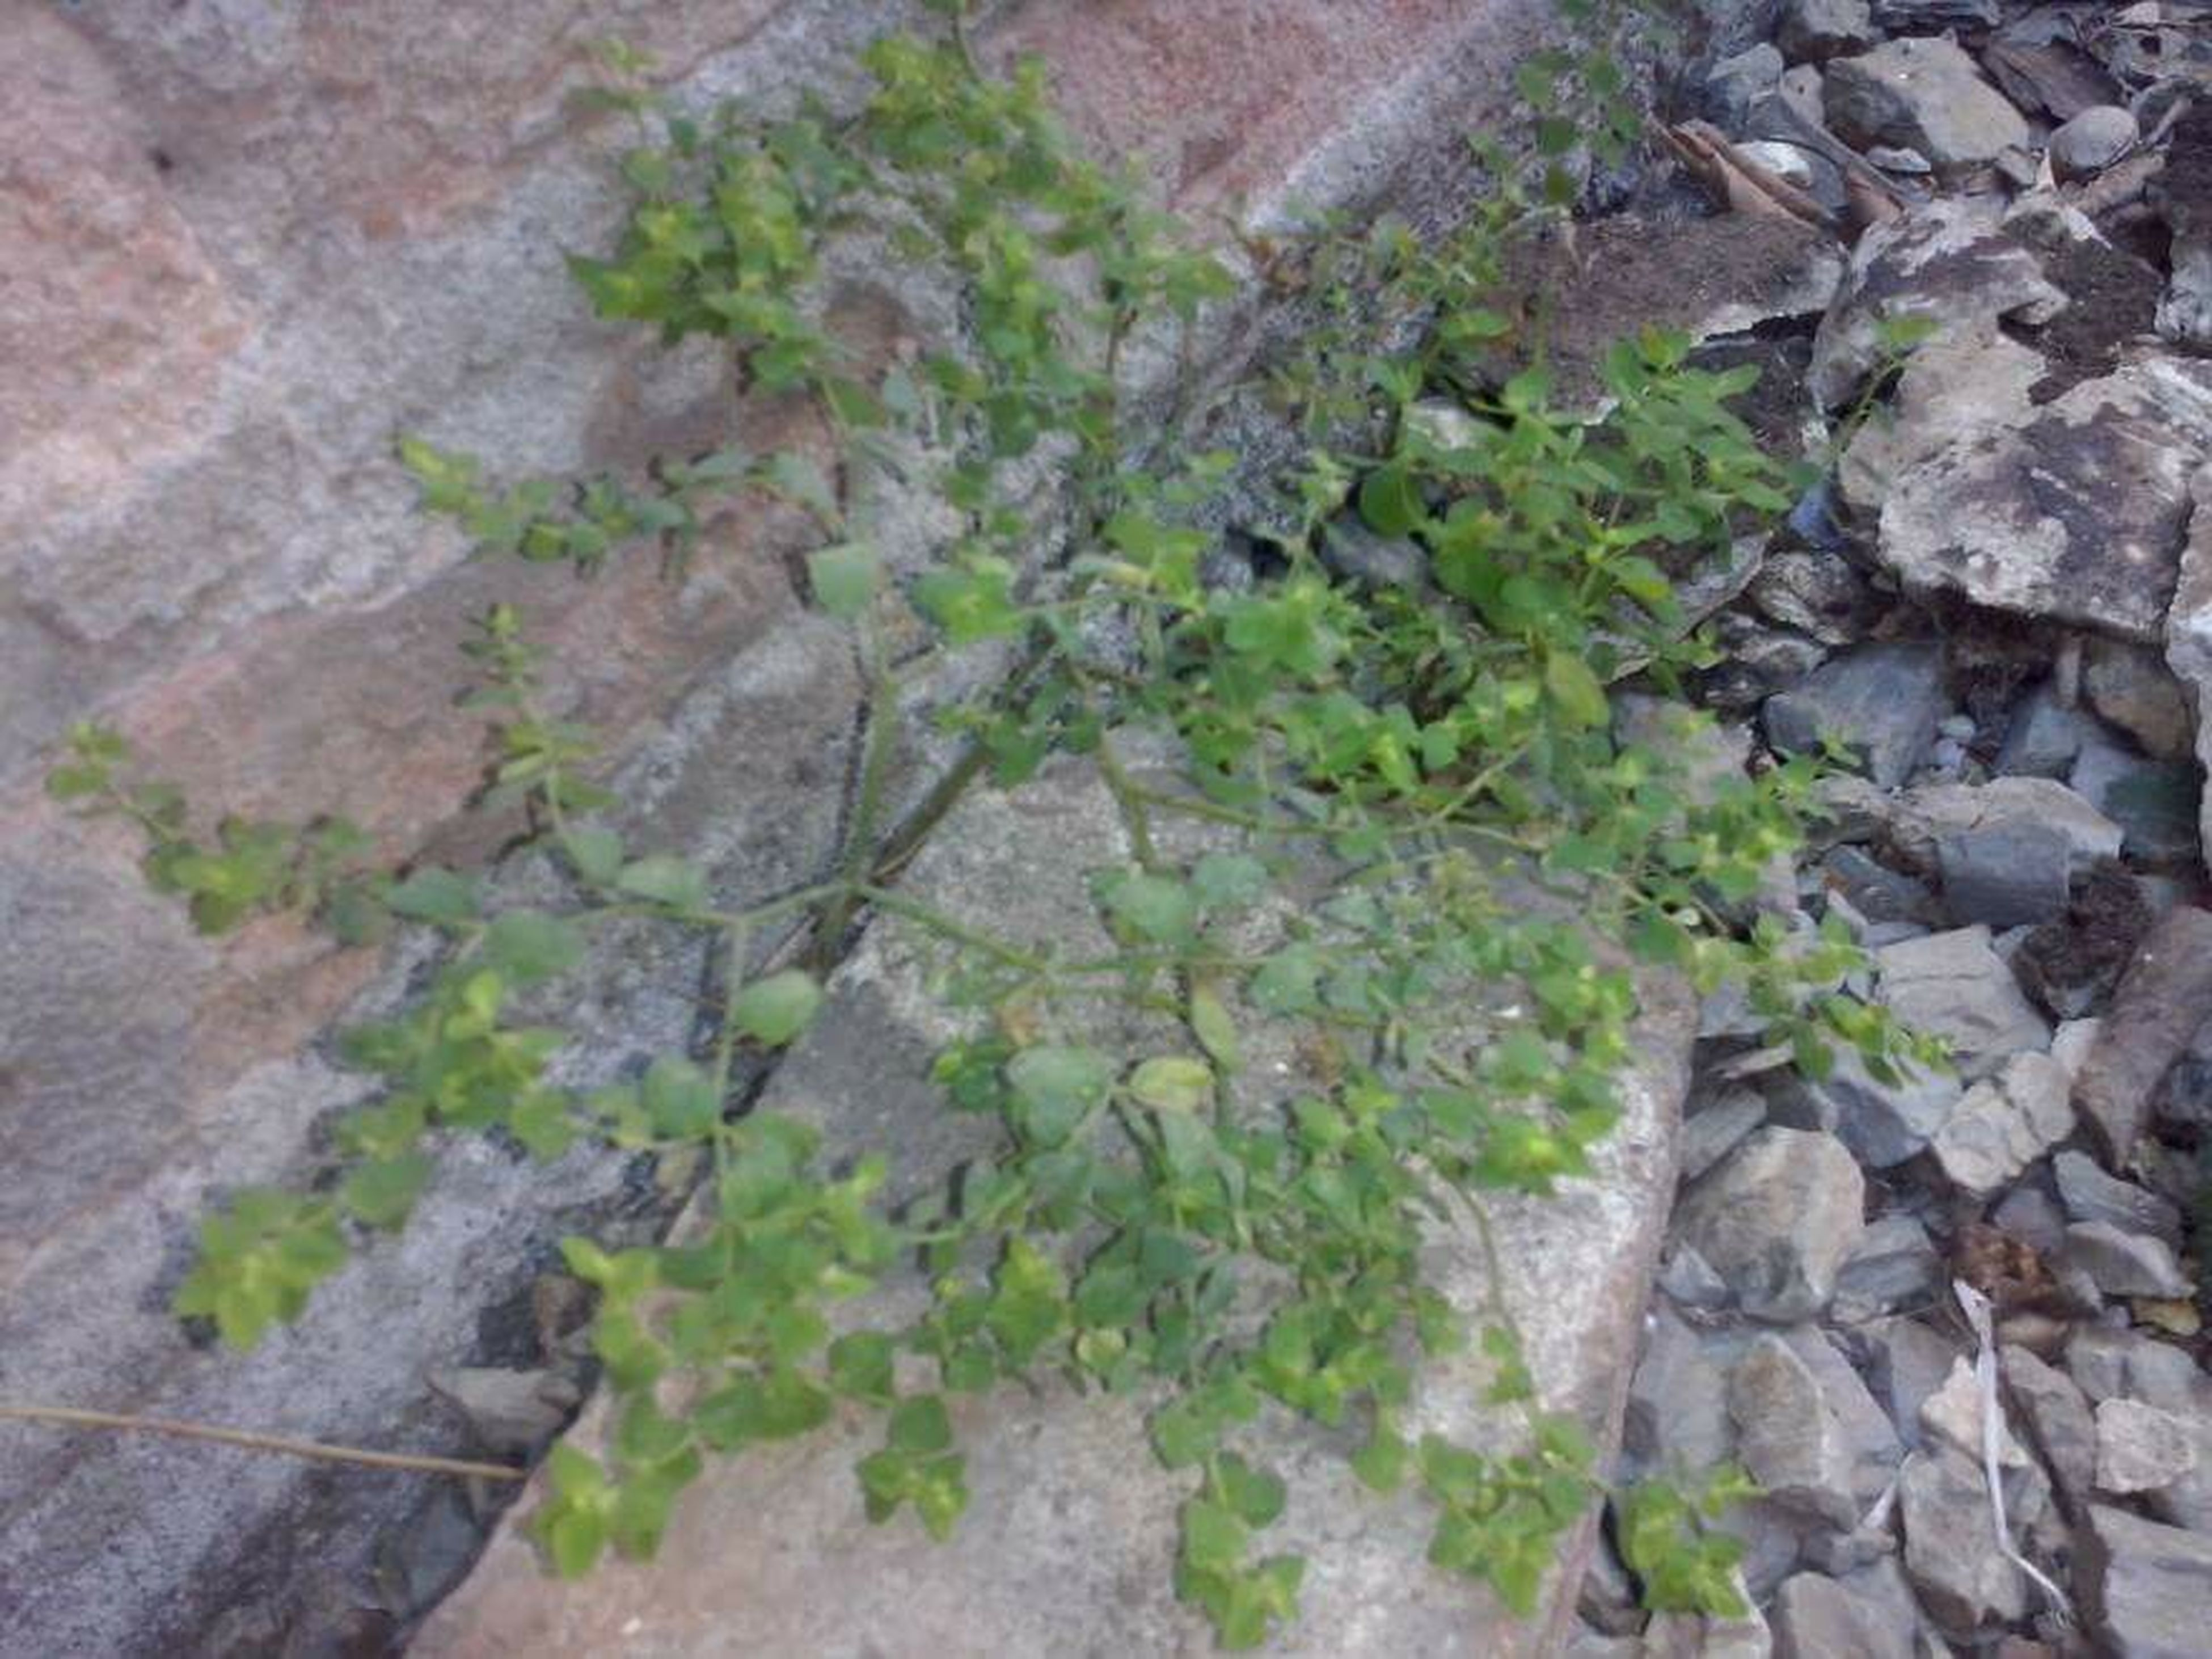 plant, growth, high angle view, leaf, wall - building feature, built structure, stone wall, ivy, nature, architecture, growing, rock - object, day, outdoors, green color, textured, no people, moss, brick wall, stone - object